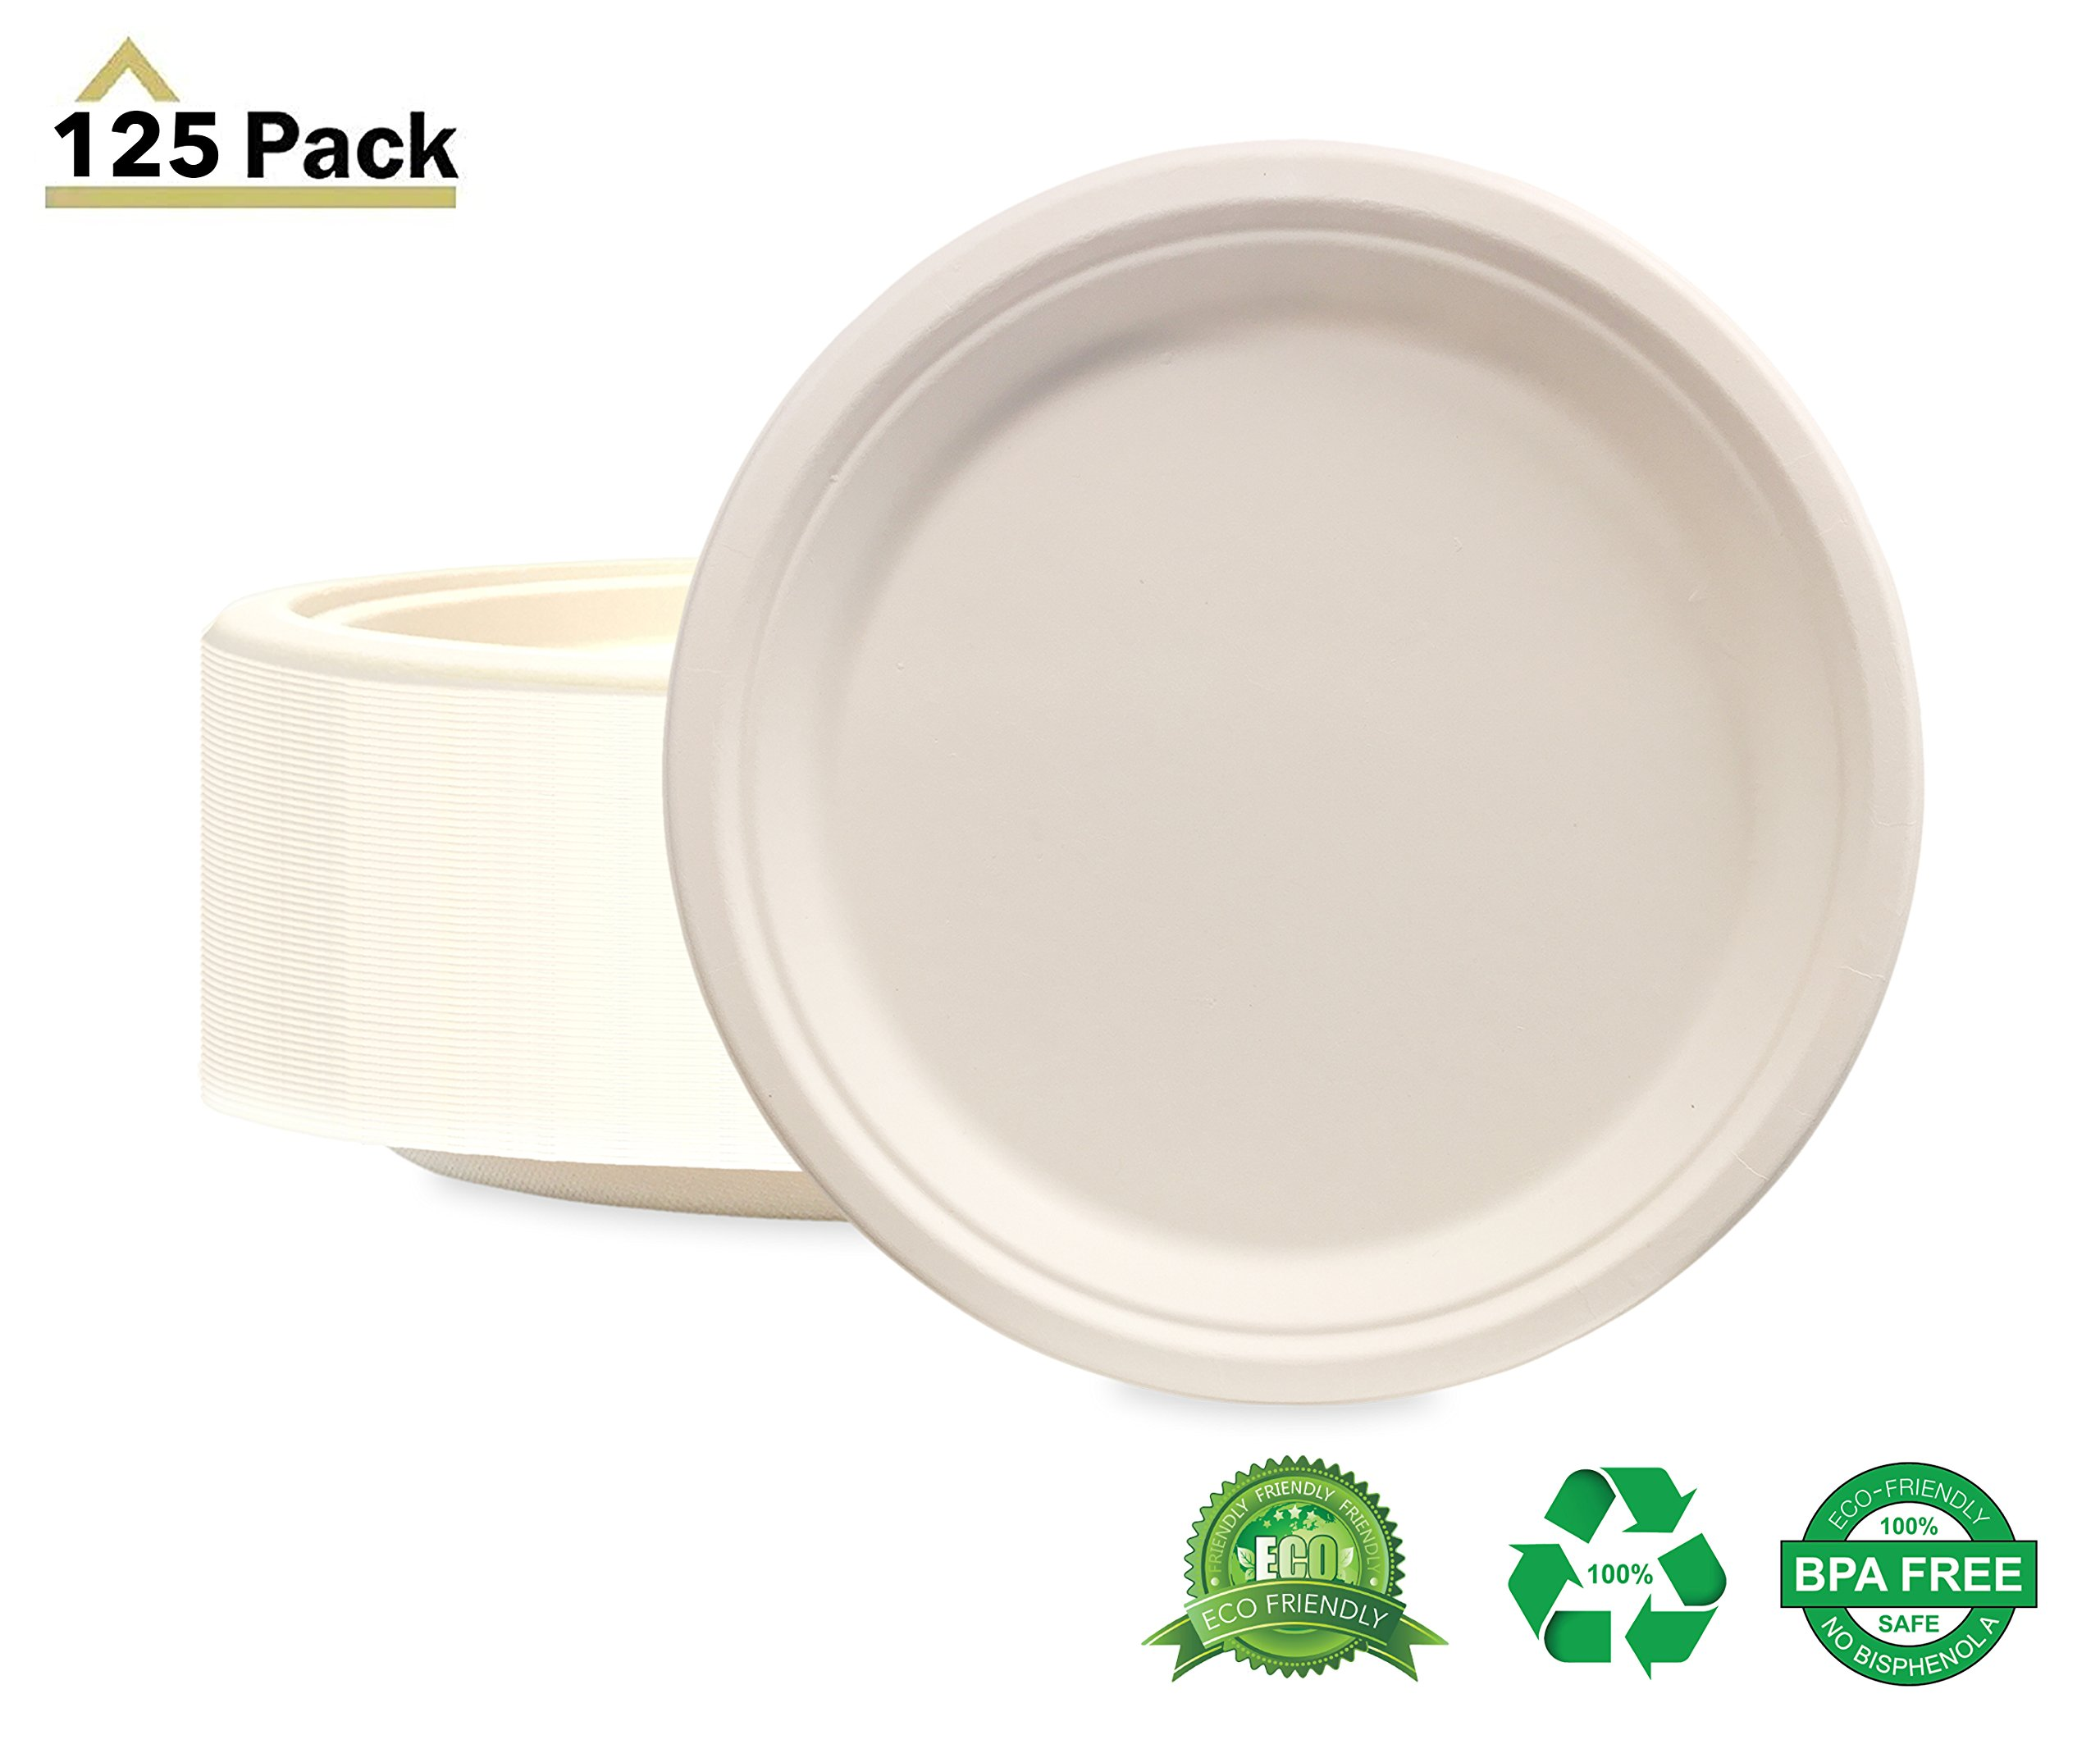 125 Pack of 10'' Round Organic Bagasse Plates Ecofriendly Disposable Dinner Plates for Picnic, Party, Catering & Everyday Use - Stock Your Home